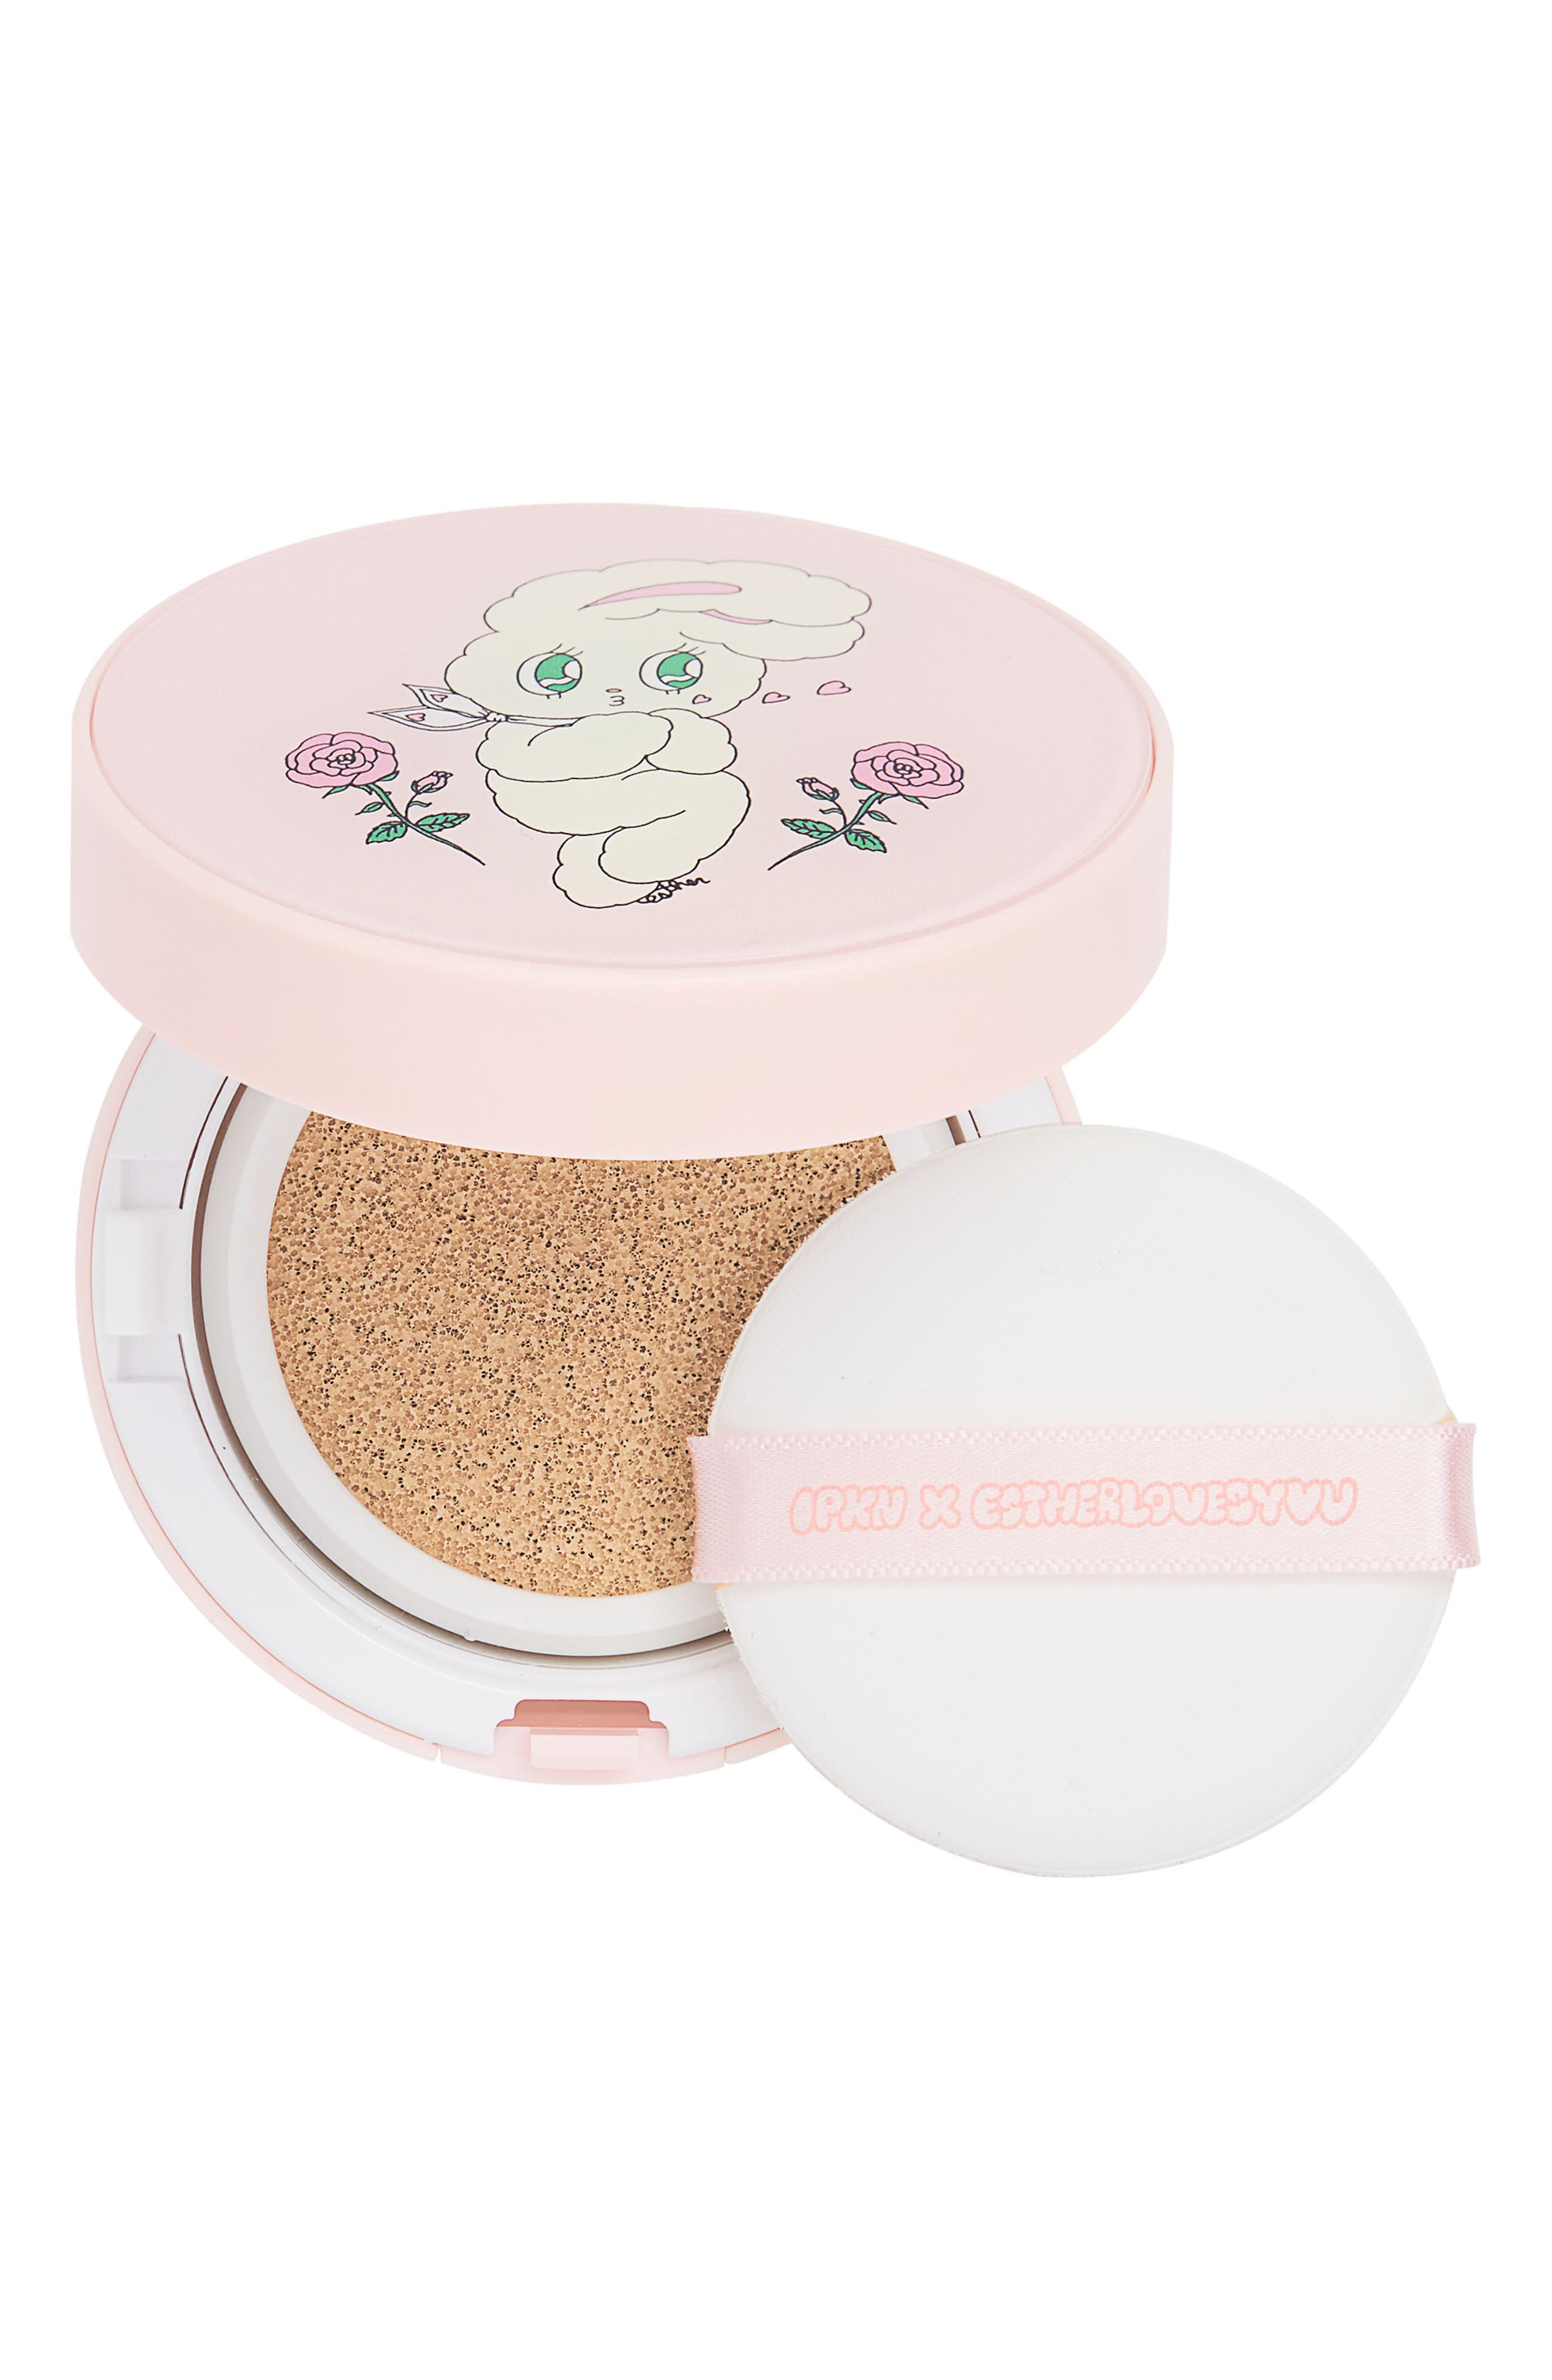 Twinkle Multi-Tasking Foundation Cushion SPF 50,                             Main thumbnail 1, color,                             Nude Beige